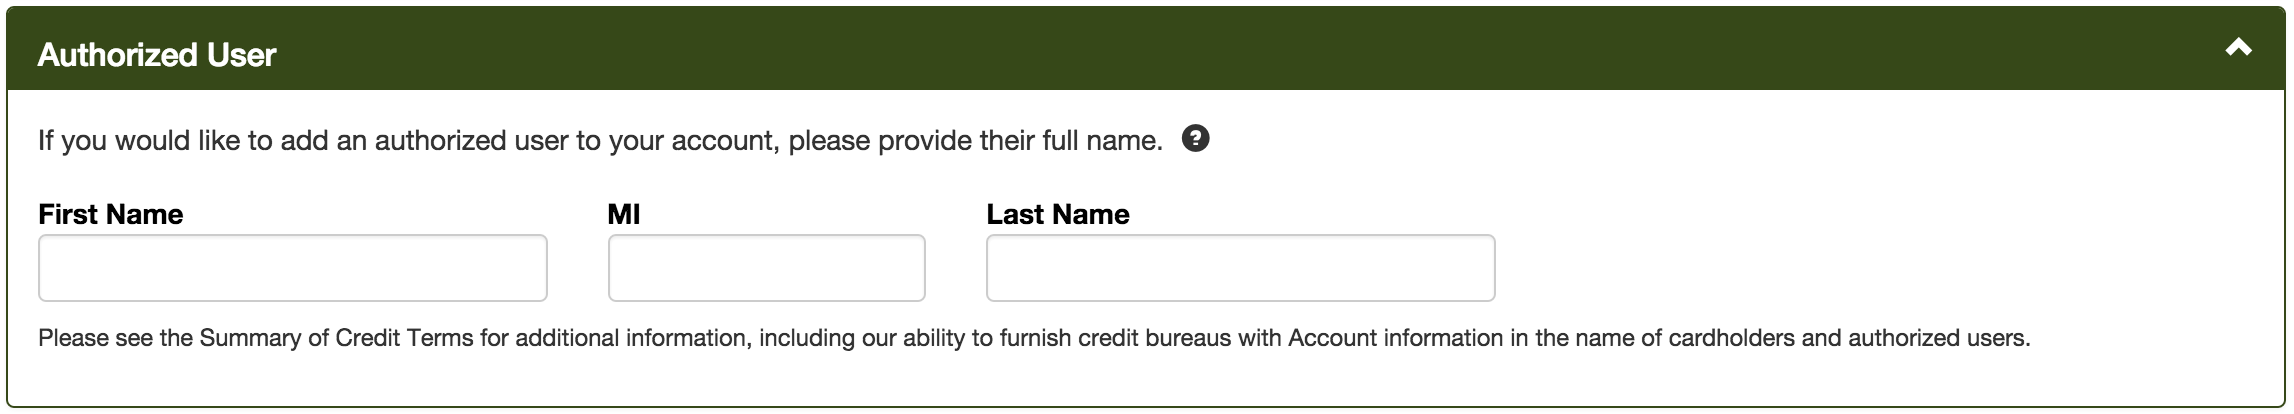 How to Apply for the Ducks Unlimited Visa Rewards Credit Card